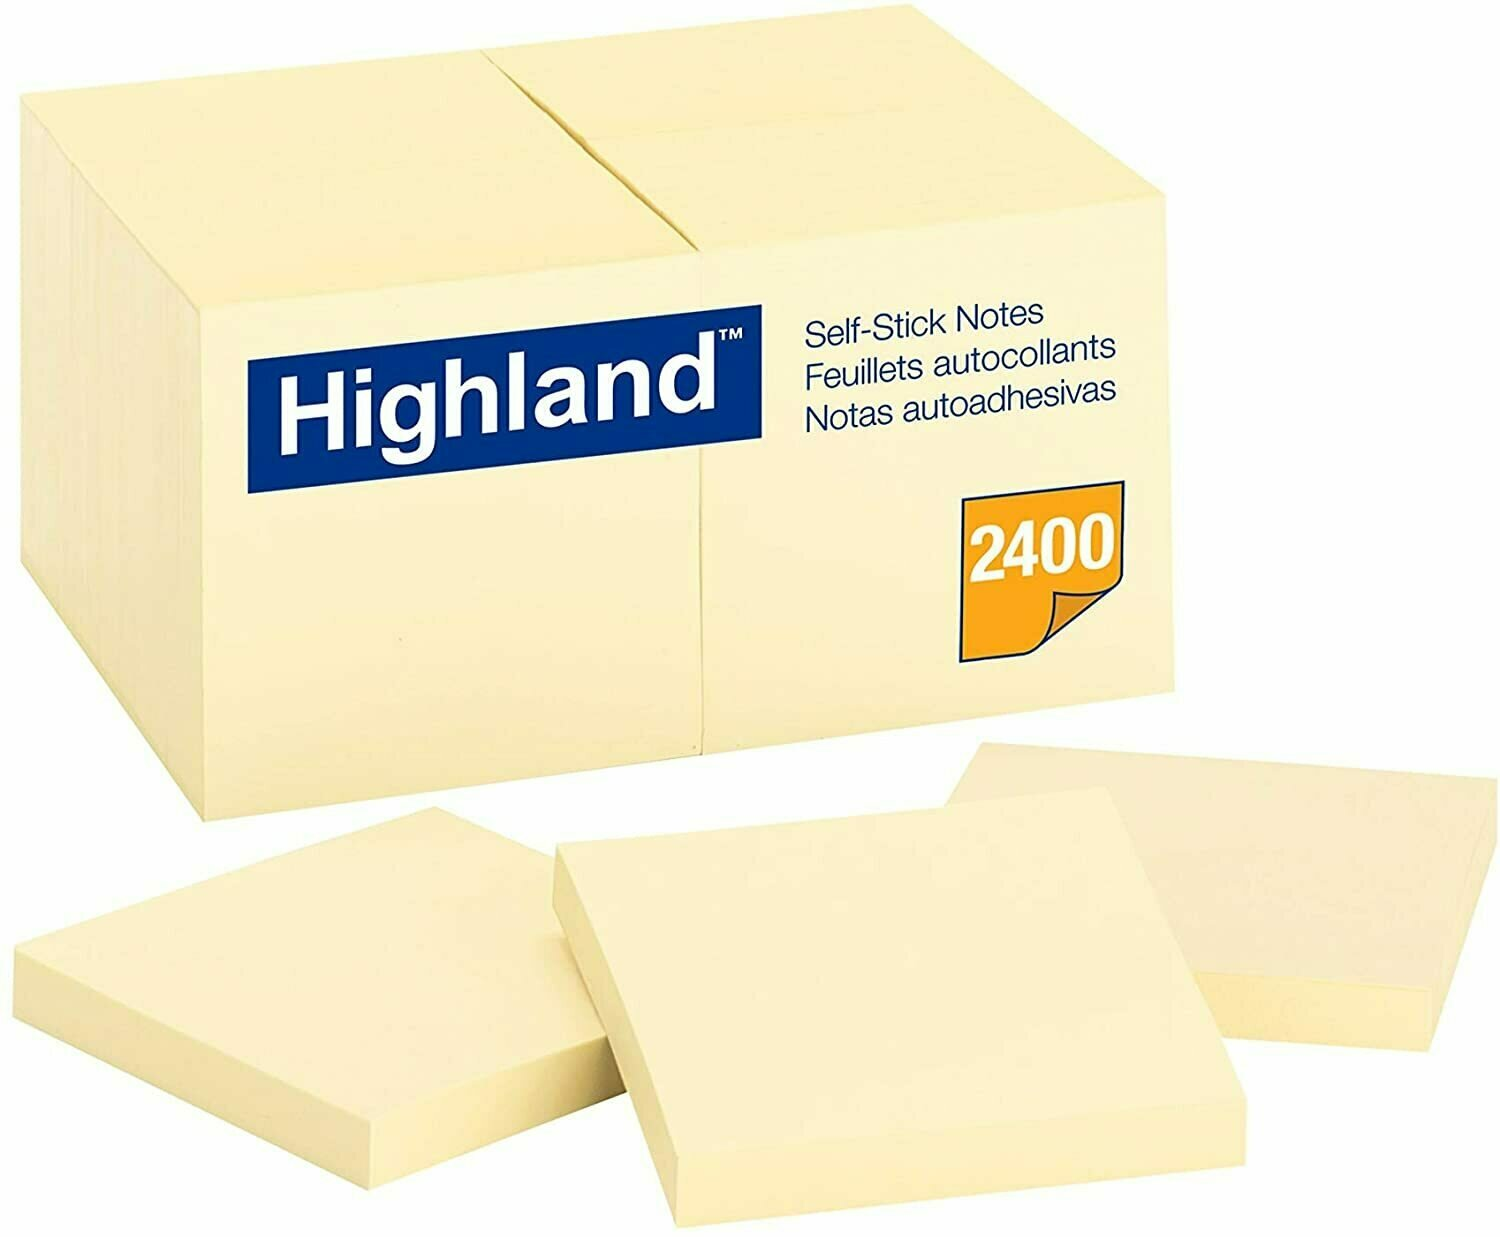 "Self-Stick Pads, Highland  3 x 3"", Yellow"